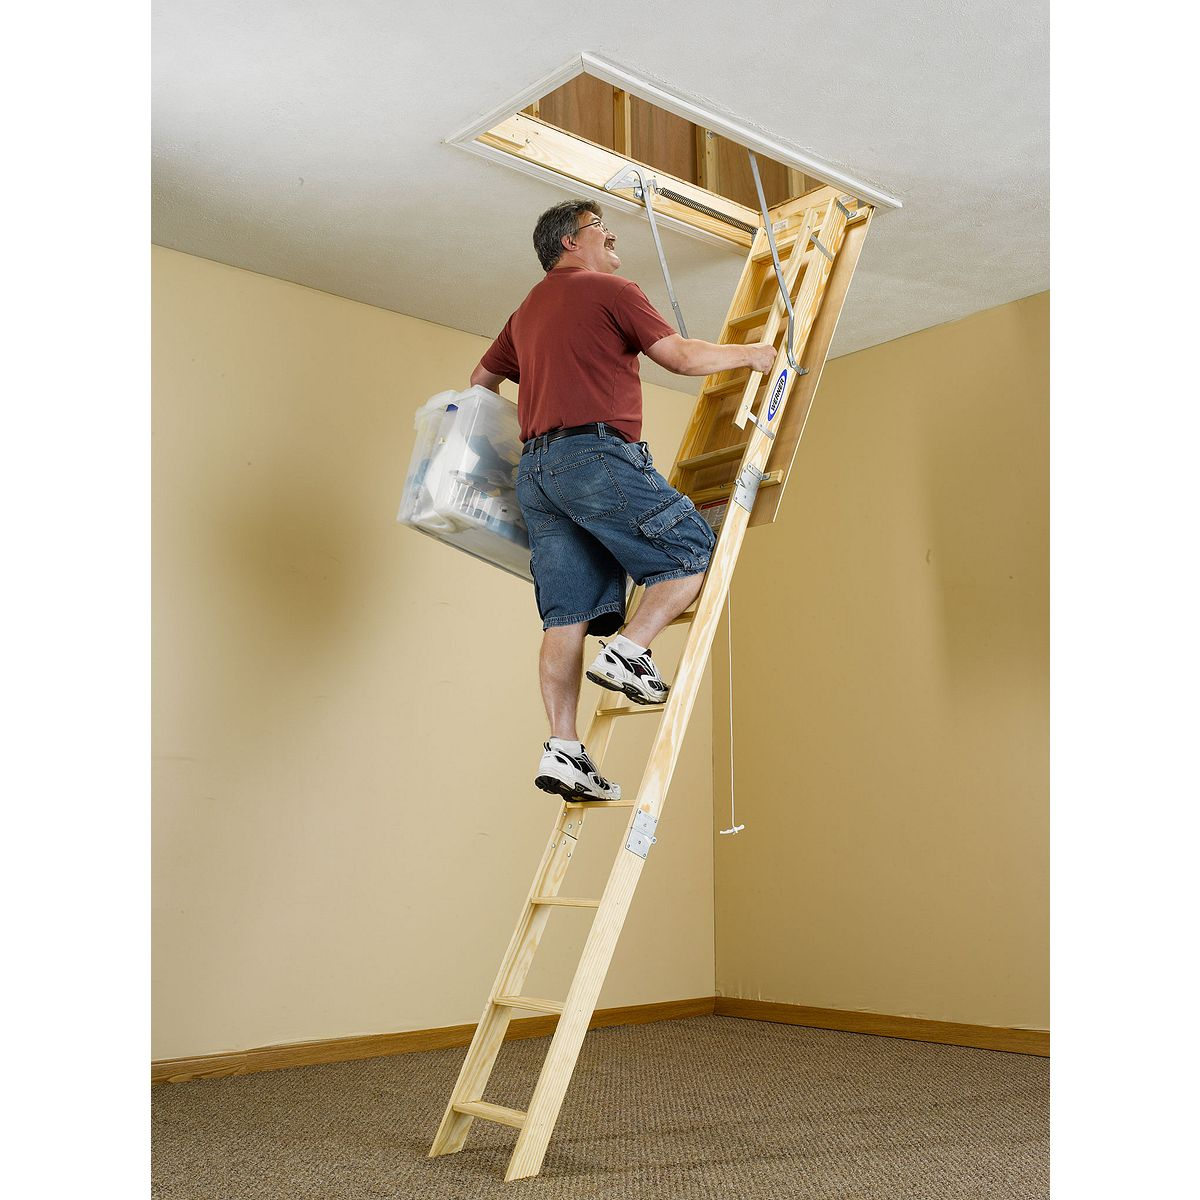 W2210 22 5 In W X 54 In L X 10 Ft H Ceiling Wood Attic Ladder